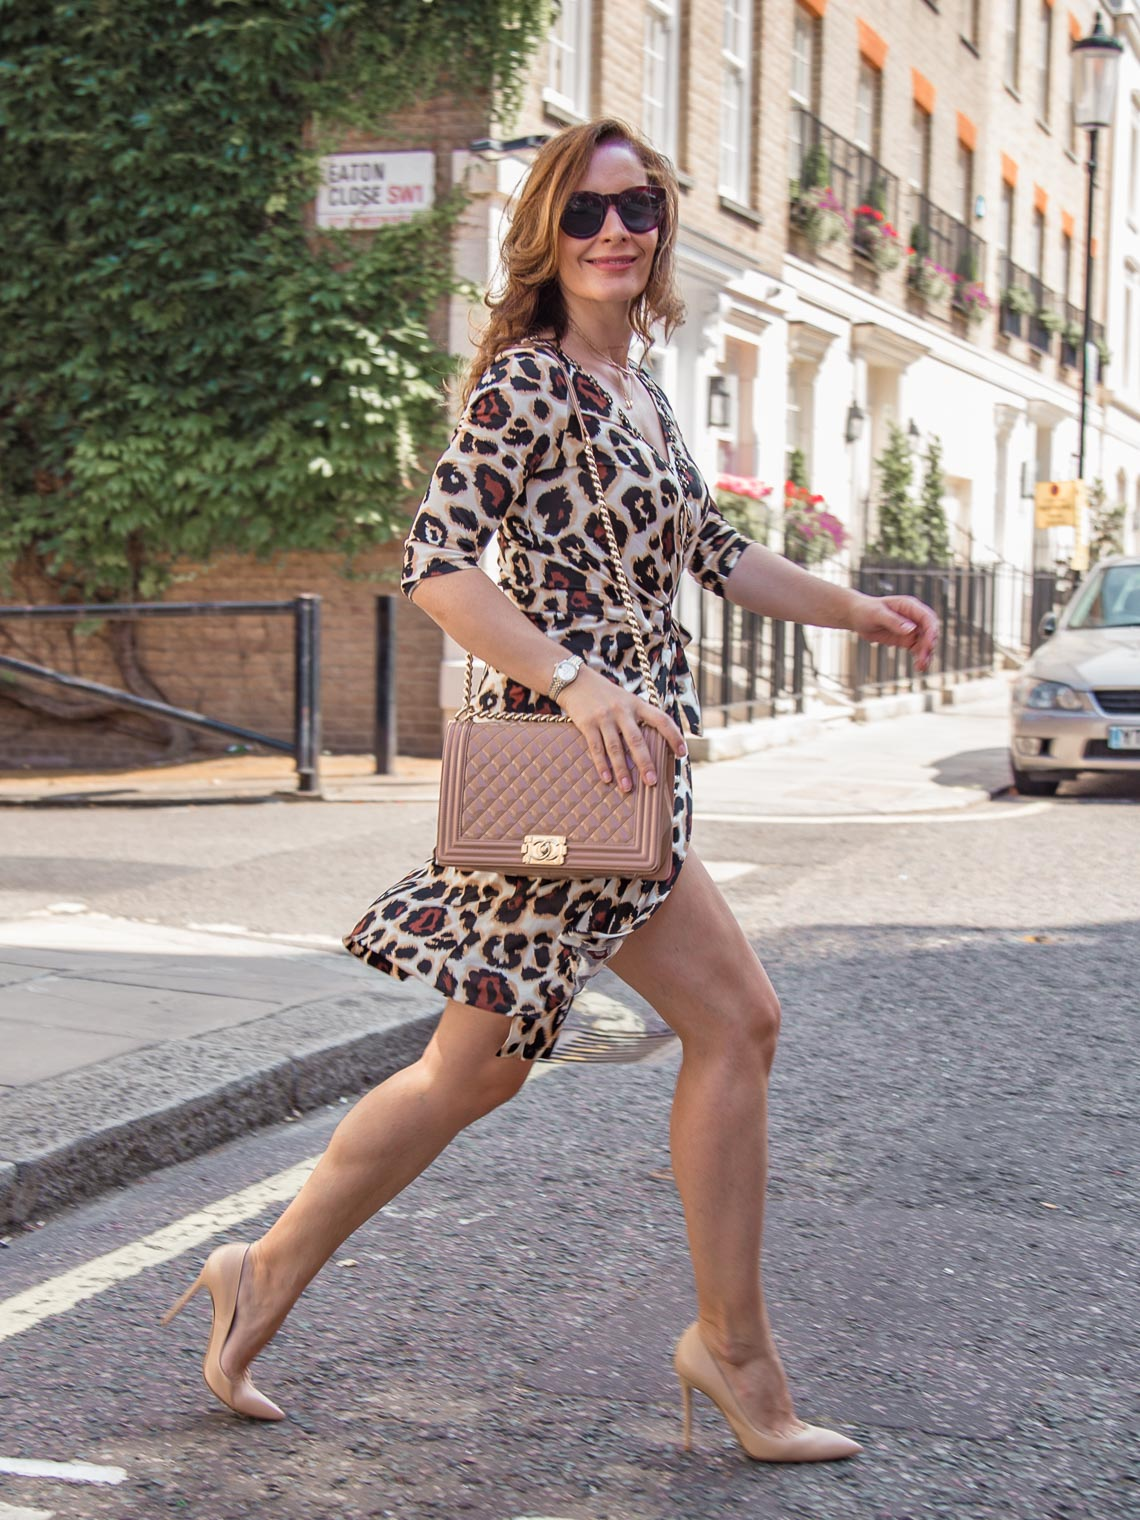 Beige pumps Gianvito Rossi Chanel Boy bag animal print dress